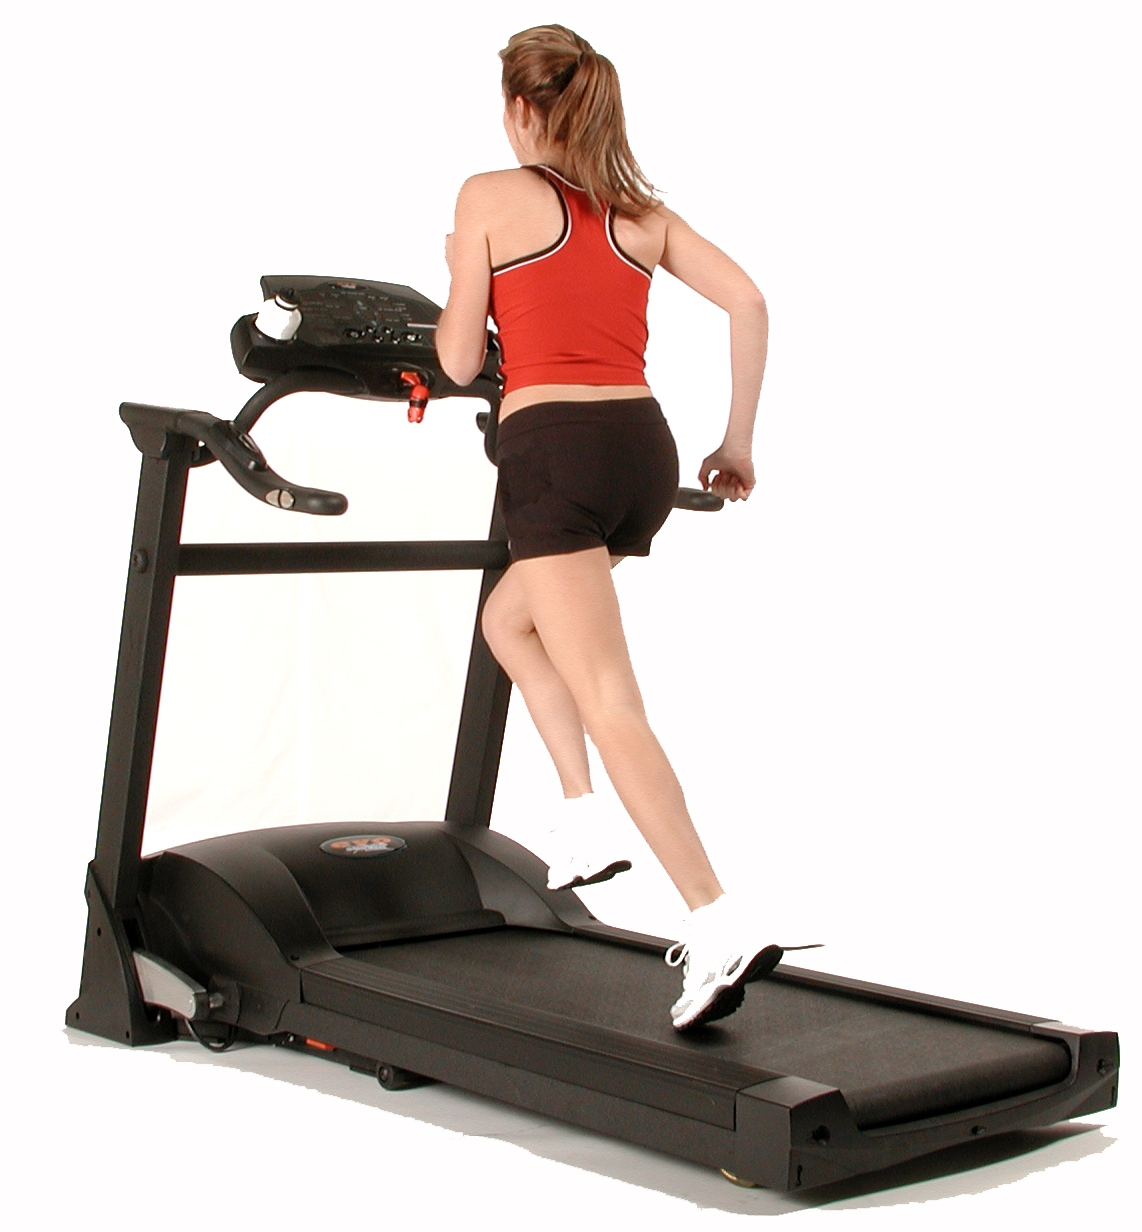 Buy Right Bariatric Equipment at the Right Price?